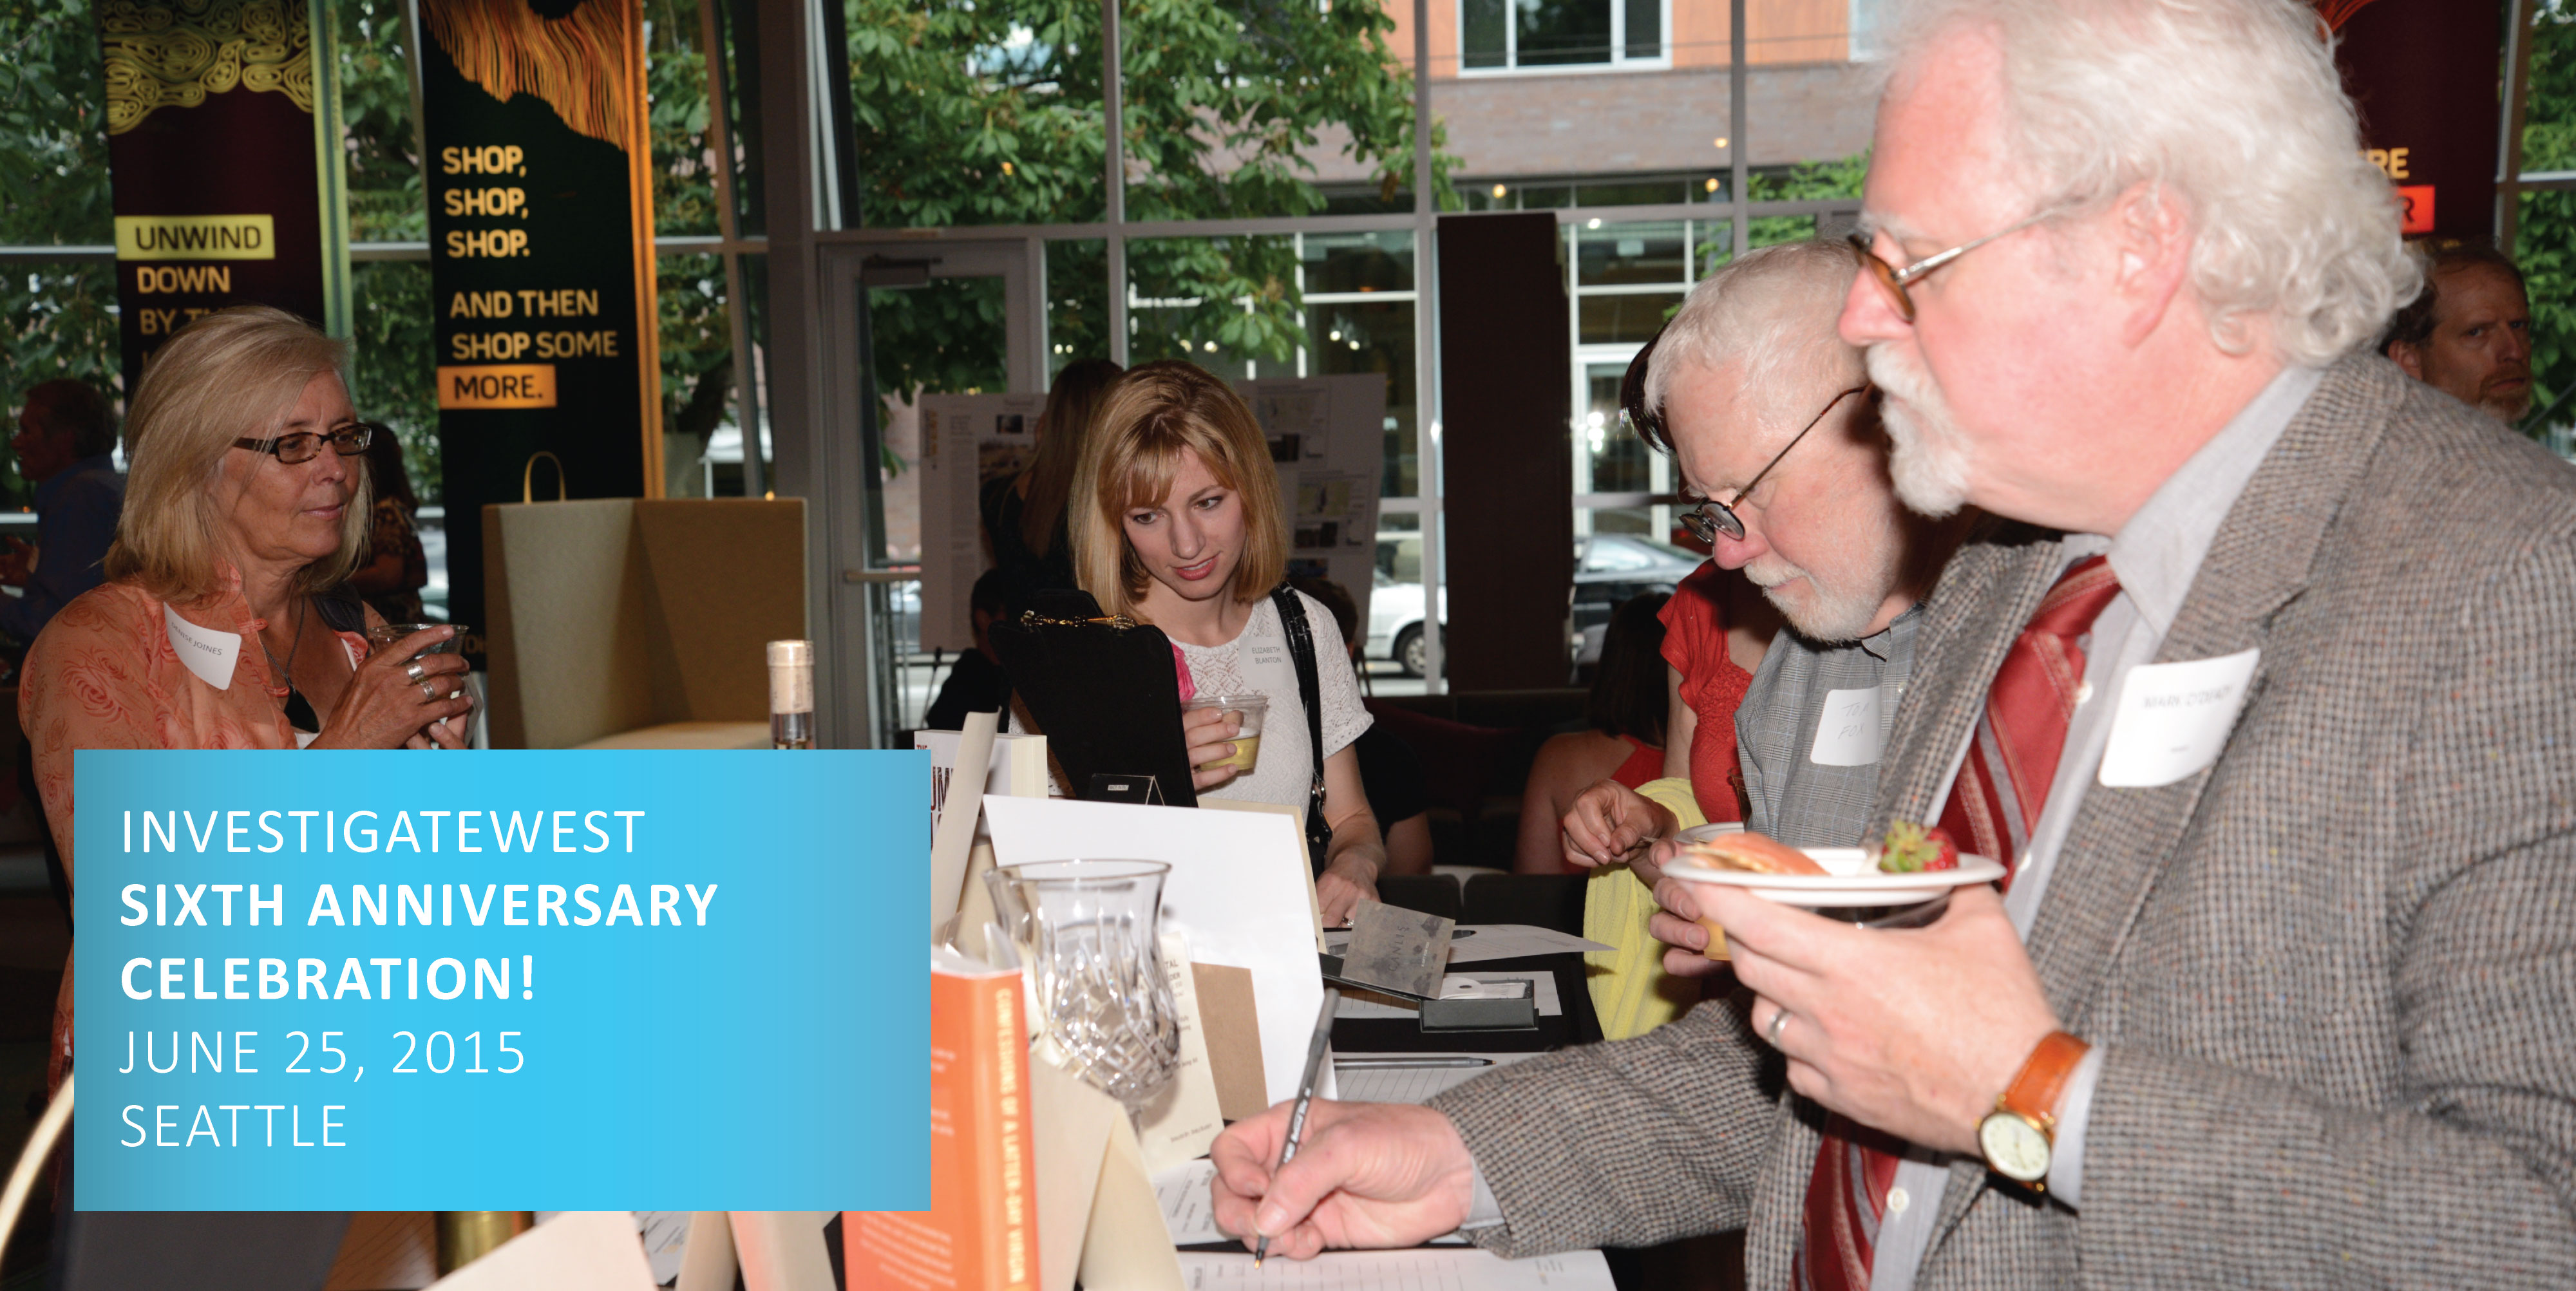 June 25: Sixth Anniversary Celebration in Seattle